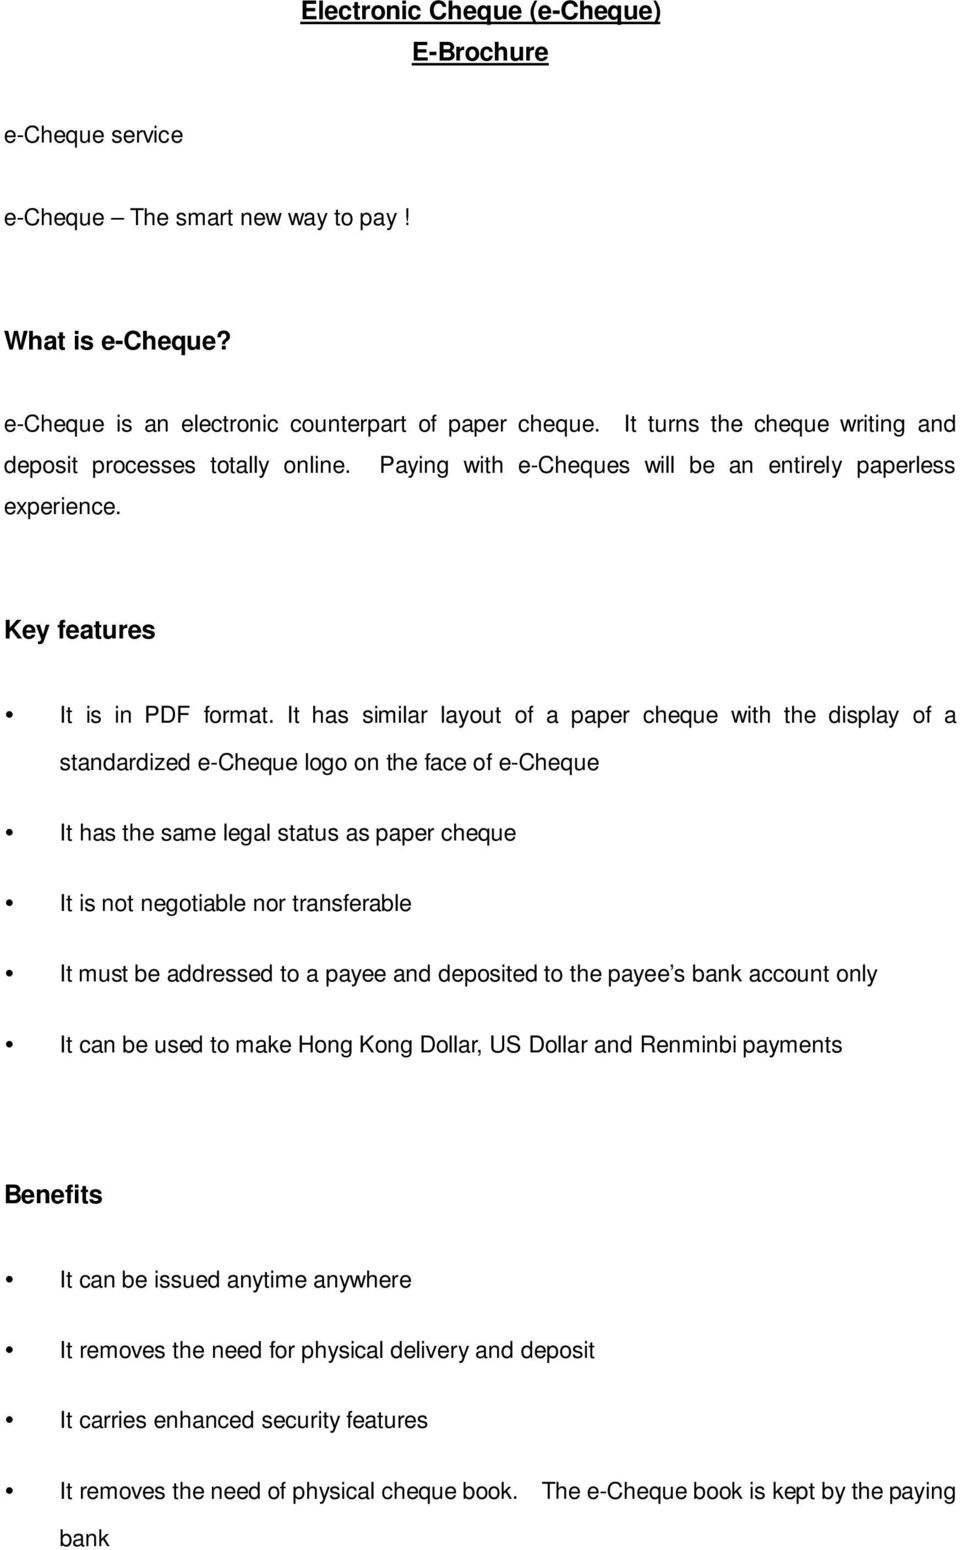 It has similar layout of a paper cheque with the display of a standardized e-cheque logo on the face of e-cheque It has the same legal status as paper cheque It is not negotiable nor transferable It